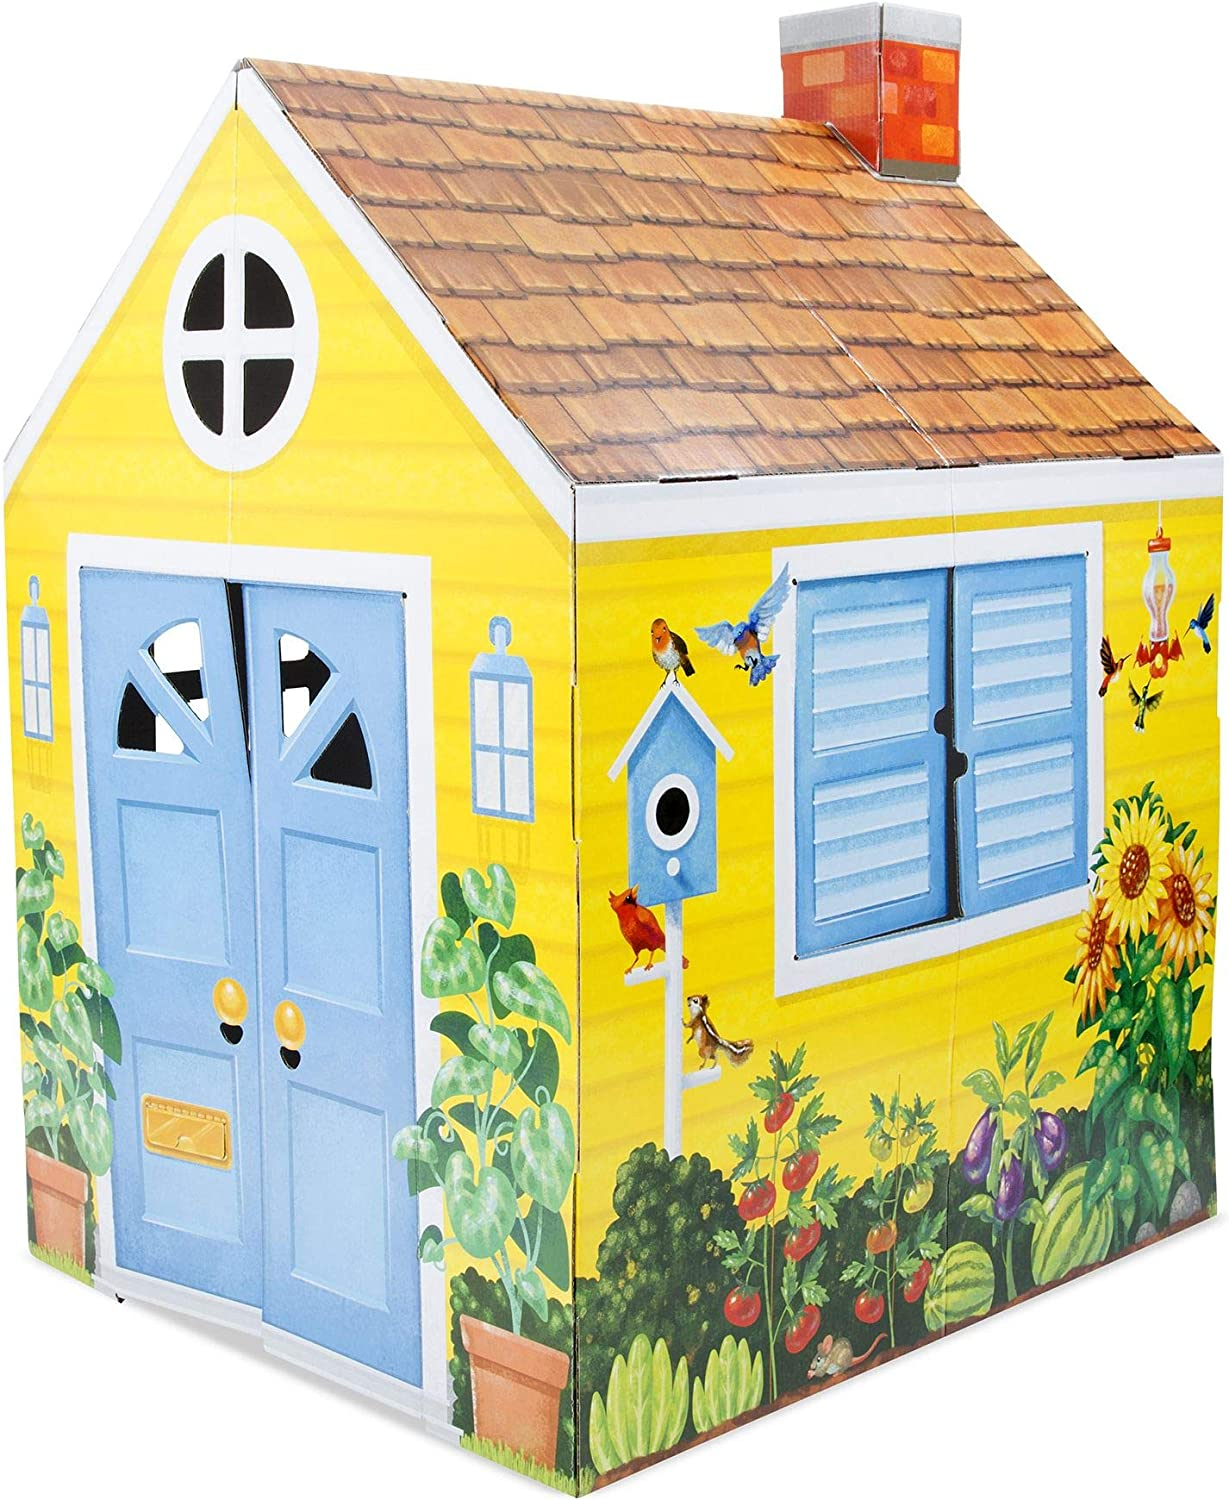 Top 11 Best Kids Outdoor Playhouses in 2020 Reviews 7